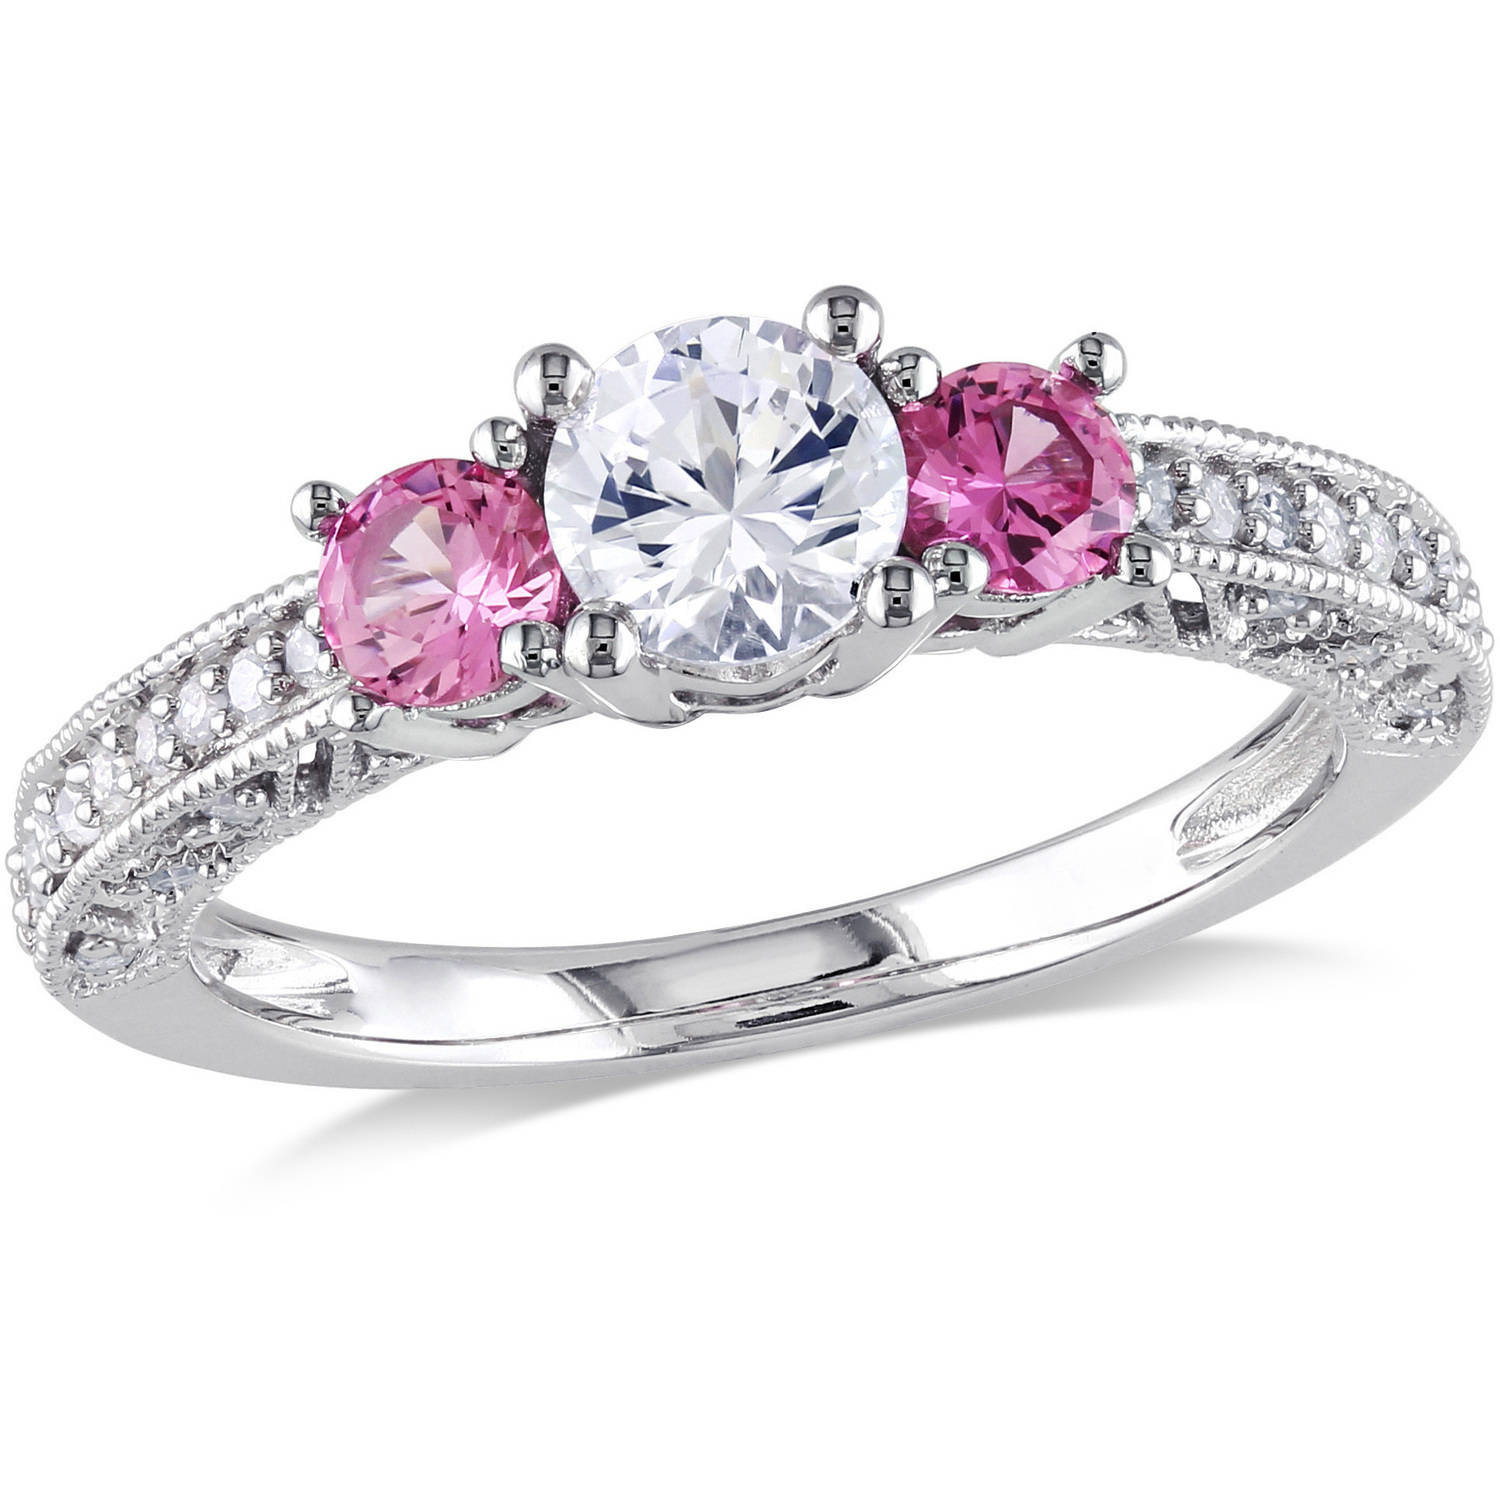 Tangelo 1 Carat T.G.W. Created White and Pink Sapphire and 1/6 Carat T.W. Diamond 10kt White Gold Three Stone Engagement Ring